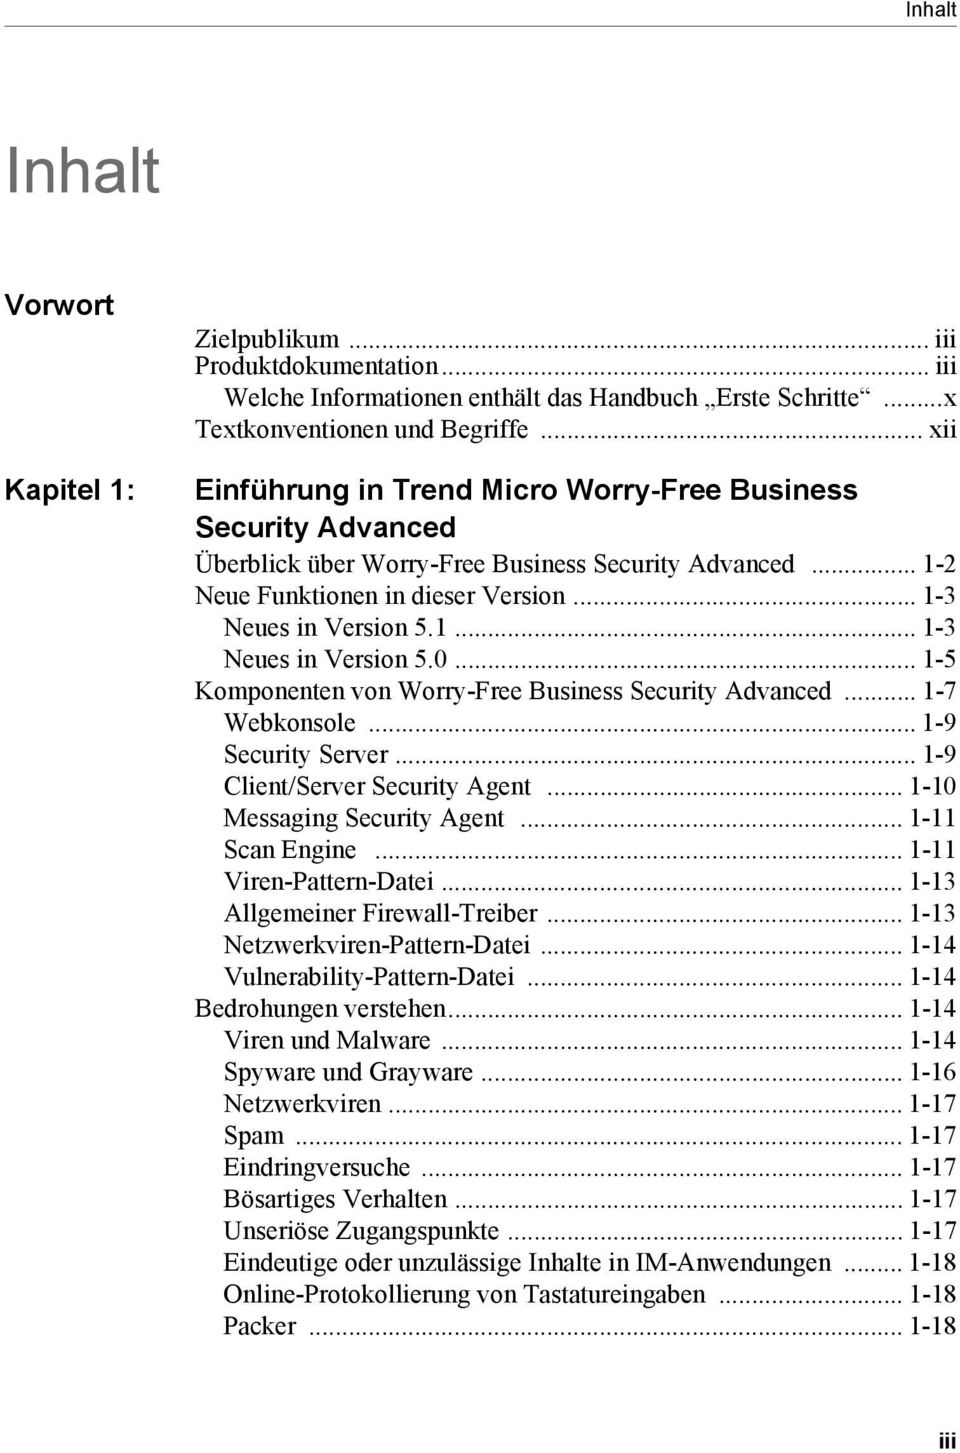 .. 1-5 Komponenten von Worry-Free Business Security Advanced... 1-7 Webkonsole... 1-9 Security Server... 1-9 Client/Server Security Agent... 1-10 Messaging Security Agent... 1-11 Scan Engine.